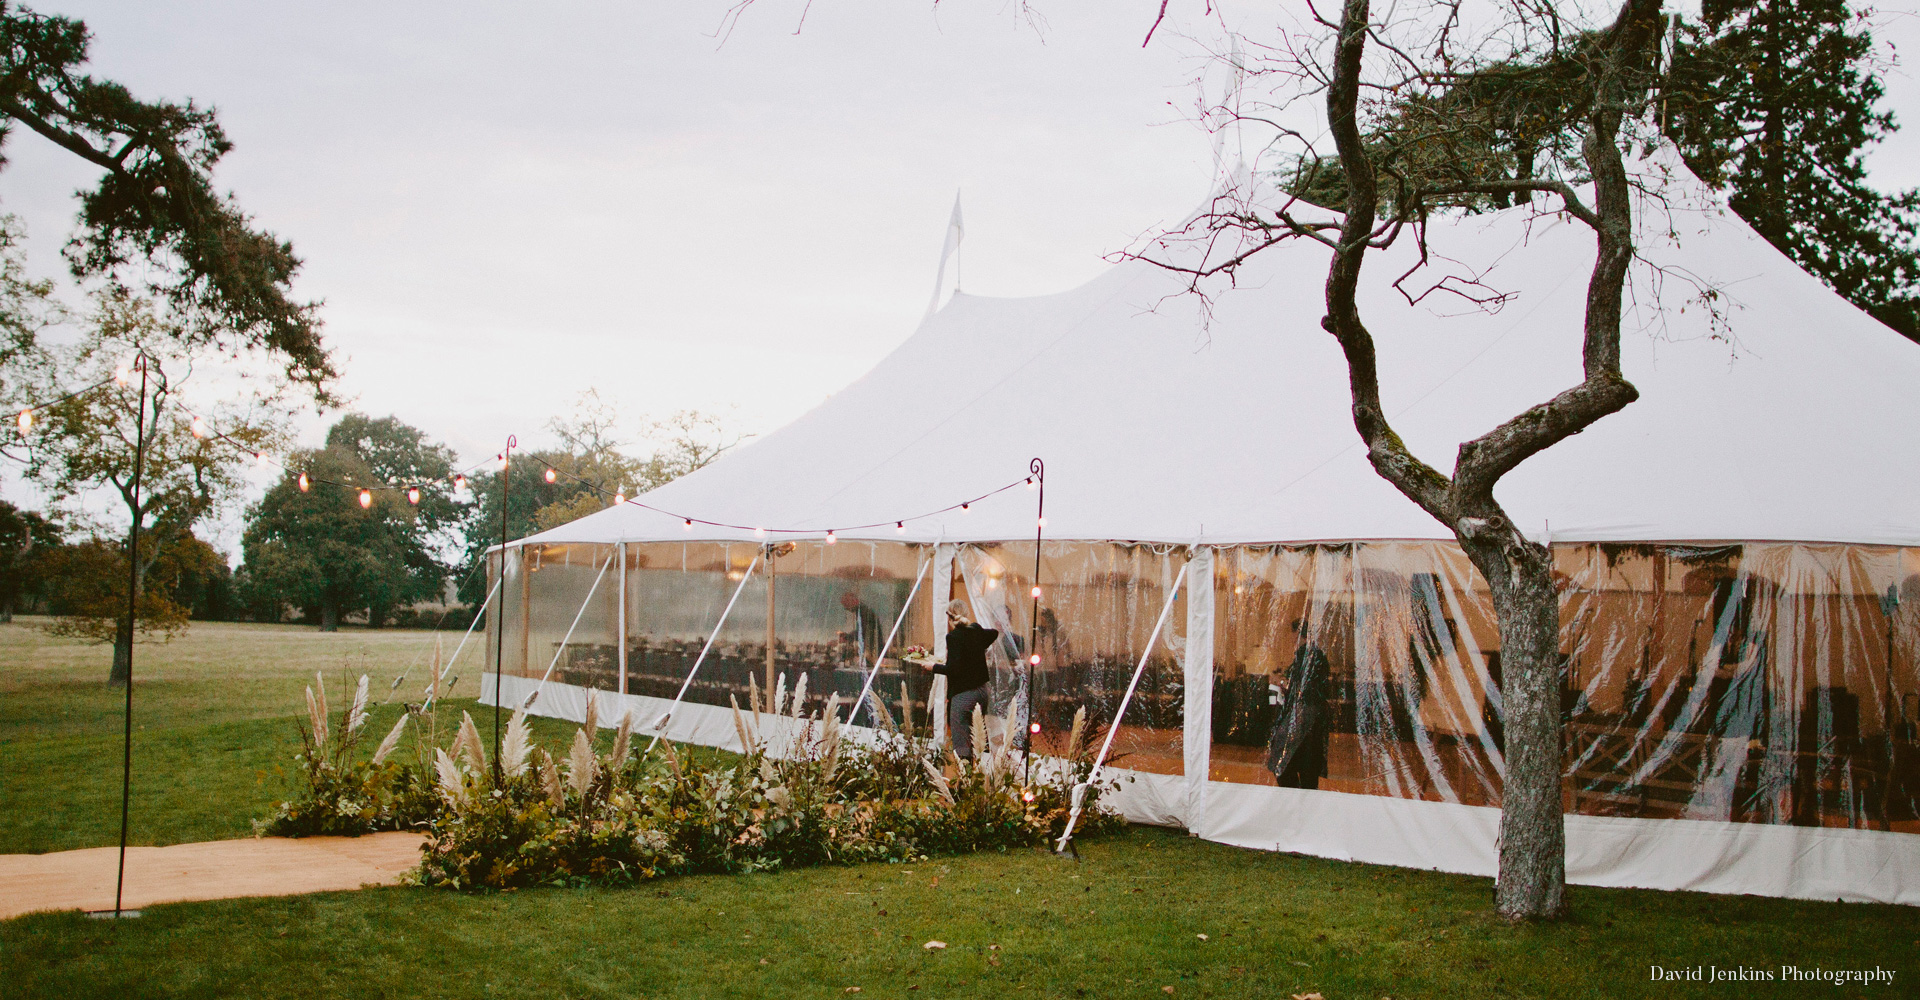 Luxury Wedding Planners & Stylists UK. Boutique, stylish, elegant, refined, creative weddings & parties in England, Yorkshire, Cheshire, Cotswolds, London. Sperry tent, Papakata, Wedding Marquee